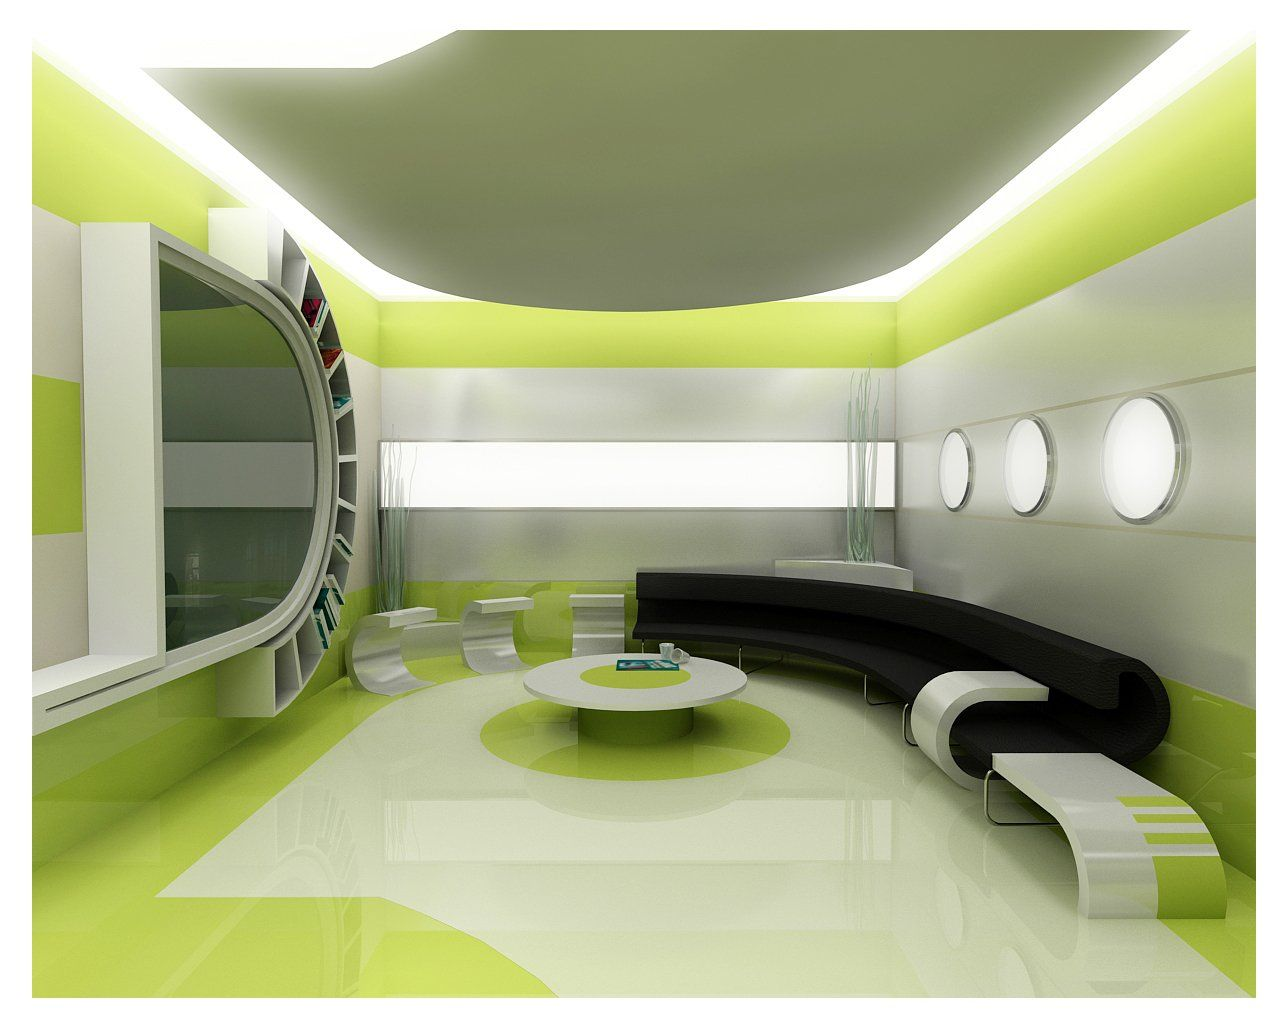 Cheap Light Shades For Ceiling Lights Green Interior Designs For Modern and Classical Home